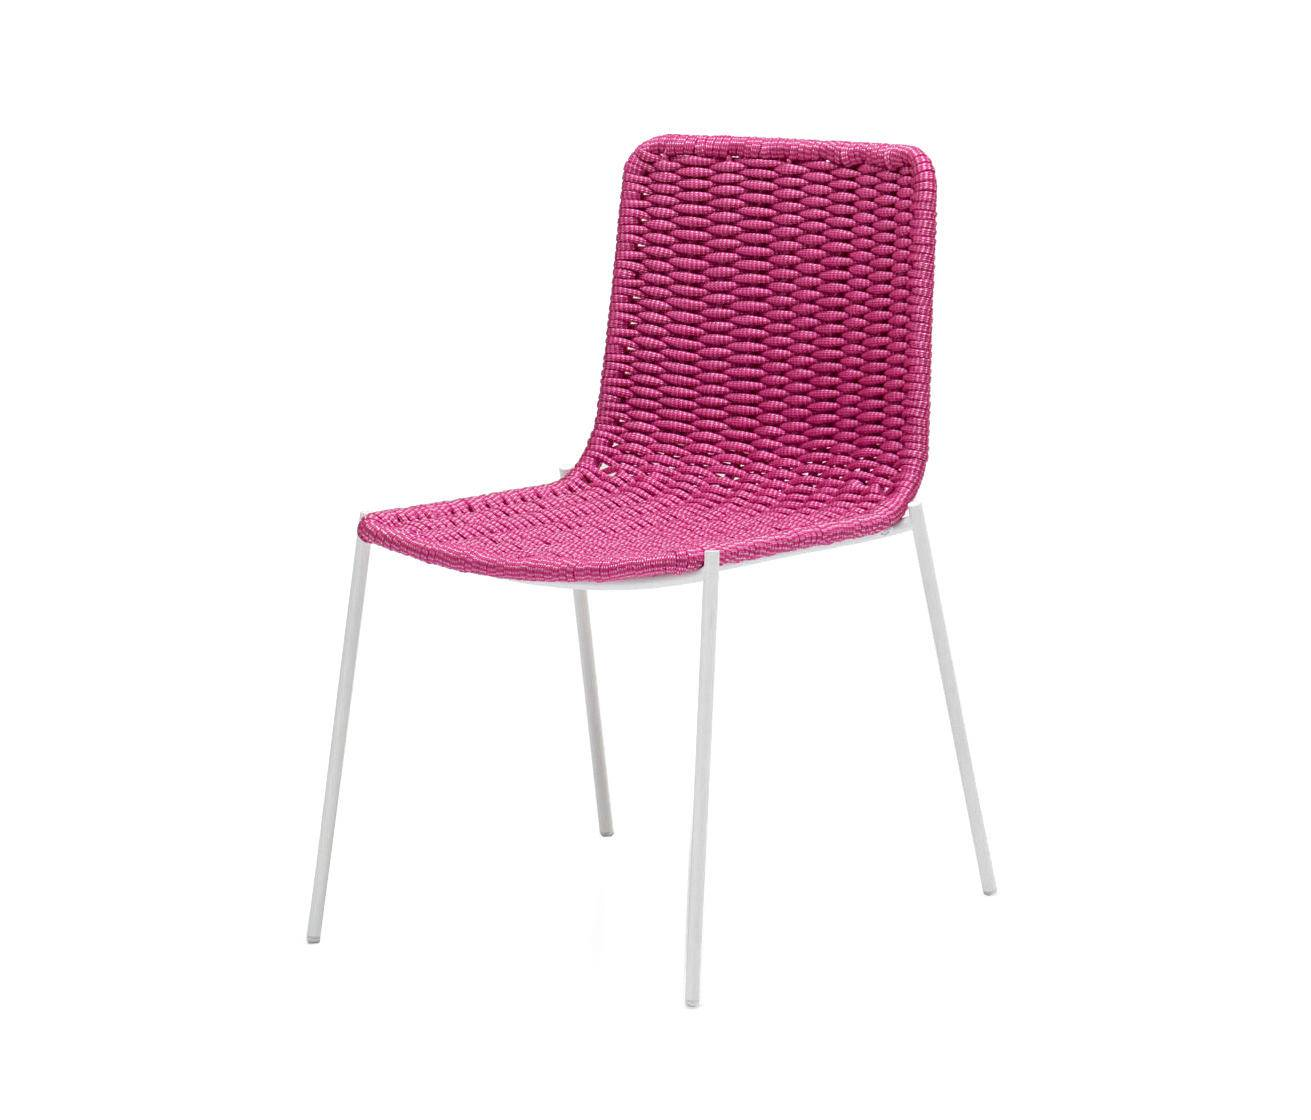 PAOLA LENTI Kiti Chair_1